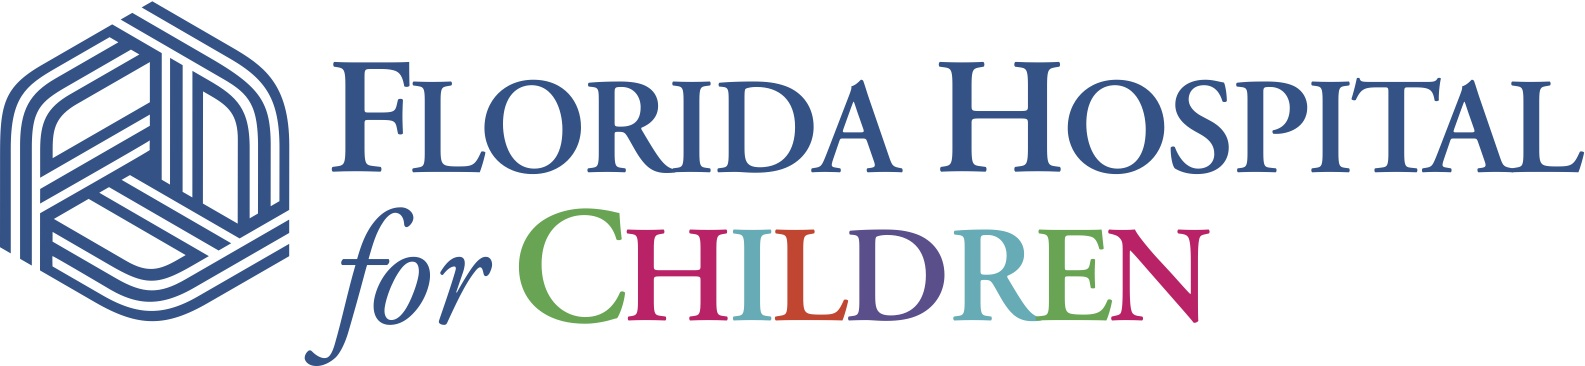 Florida Hospital For Children